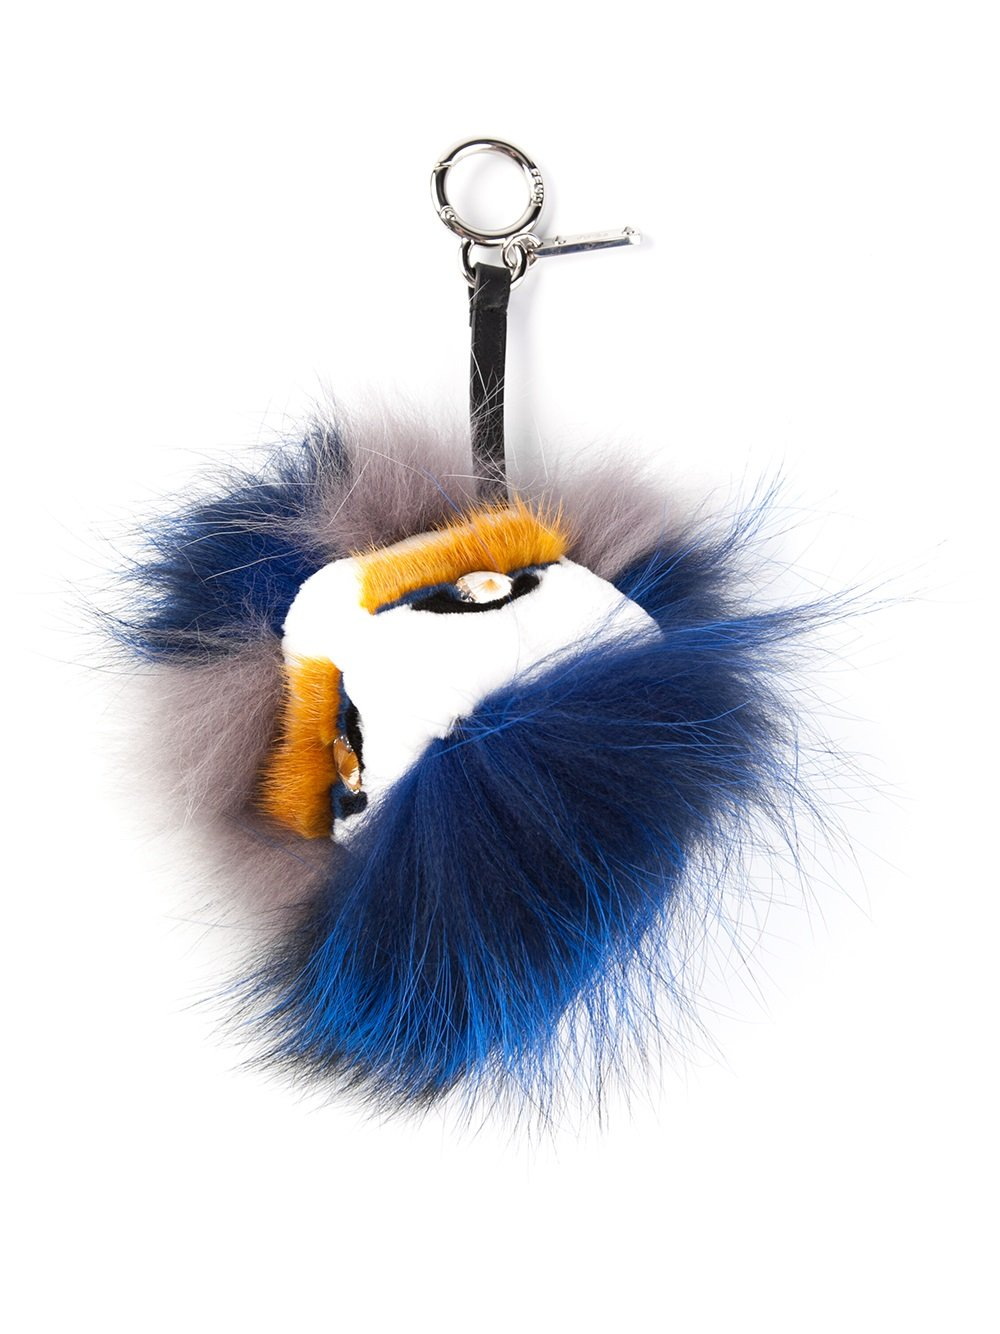 Lyst - Fendi Monster Bag Charm in Blue 7ced8e4887e0f